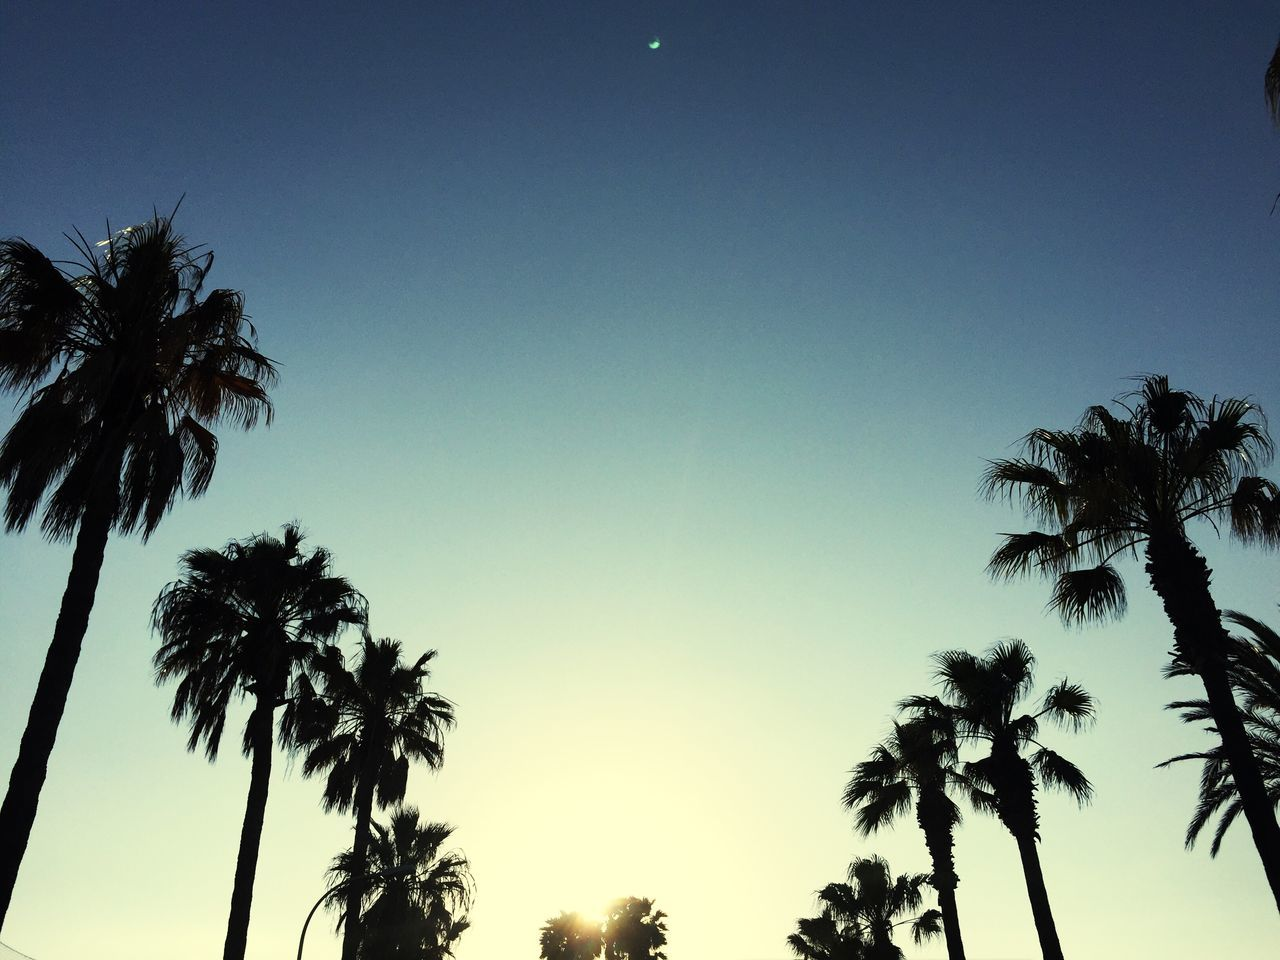 palm tree, tree, beauty in nature, low angle view, nature, tranquility, scenics, silhouette, growth, sky, tree trunk, clear sky, tranquil scene, no people, sunset, outdoors, moon, day